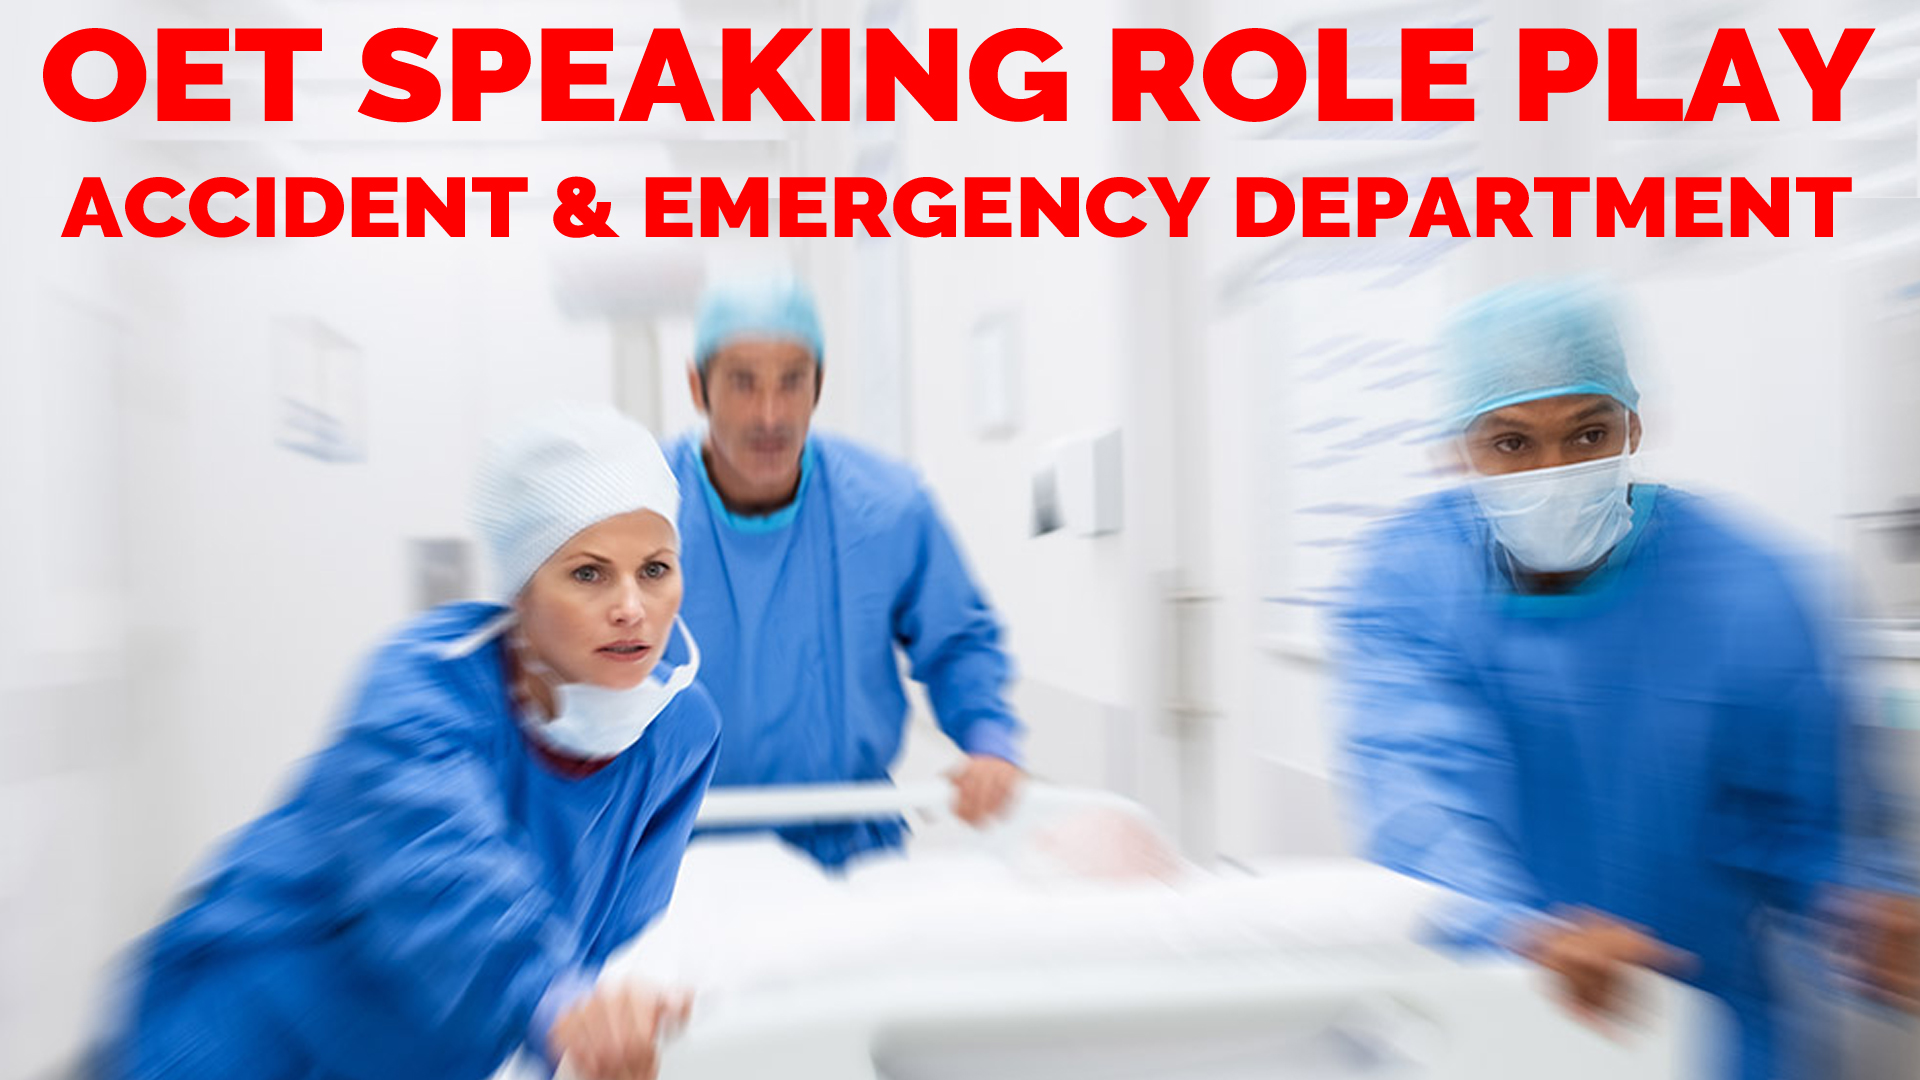 OET SPEAKING ROLE PLAY - ACCIDENT AND EMERGENCY WARD